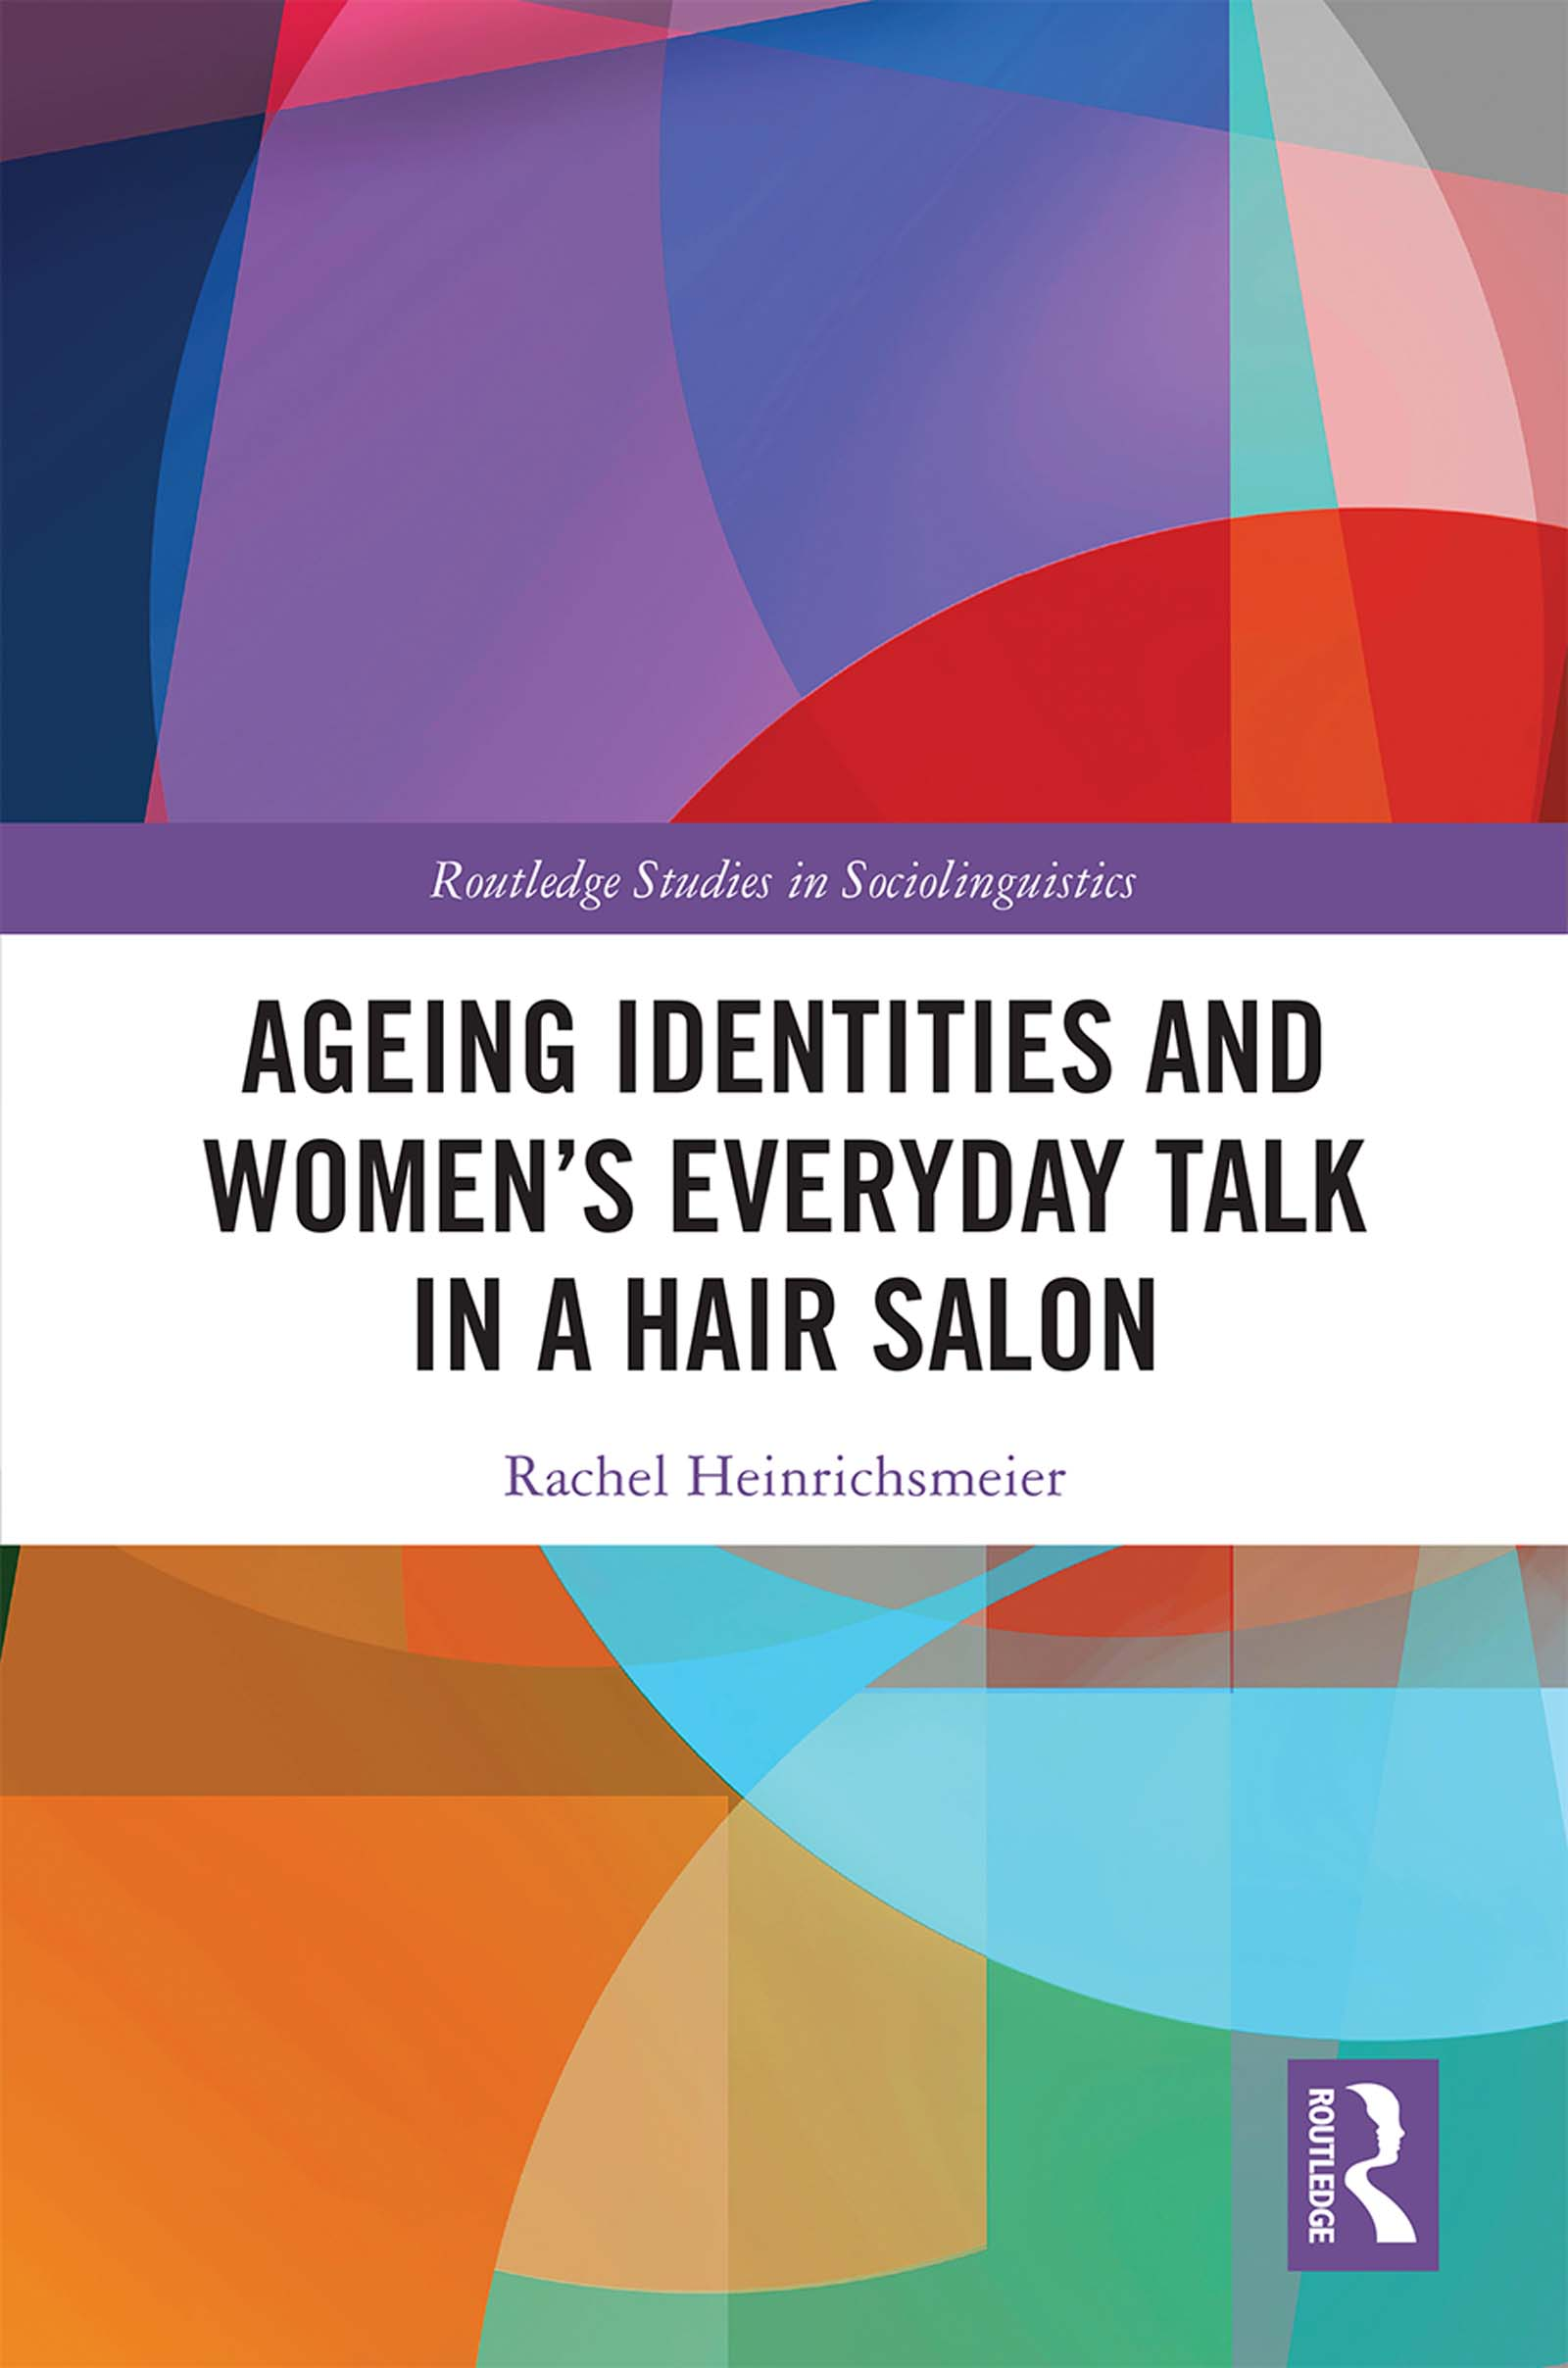 Ageing Identities and Women's Everyday Talk in a Hair Salon book cover